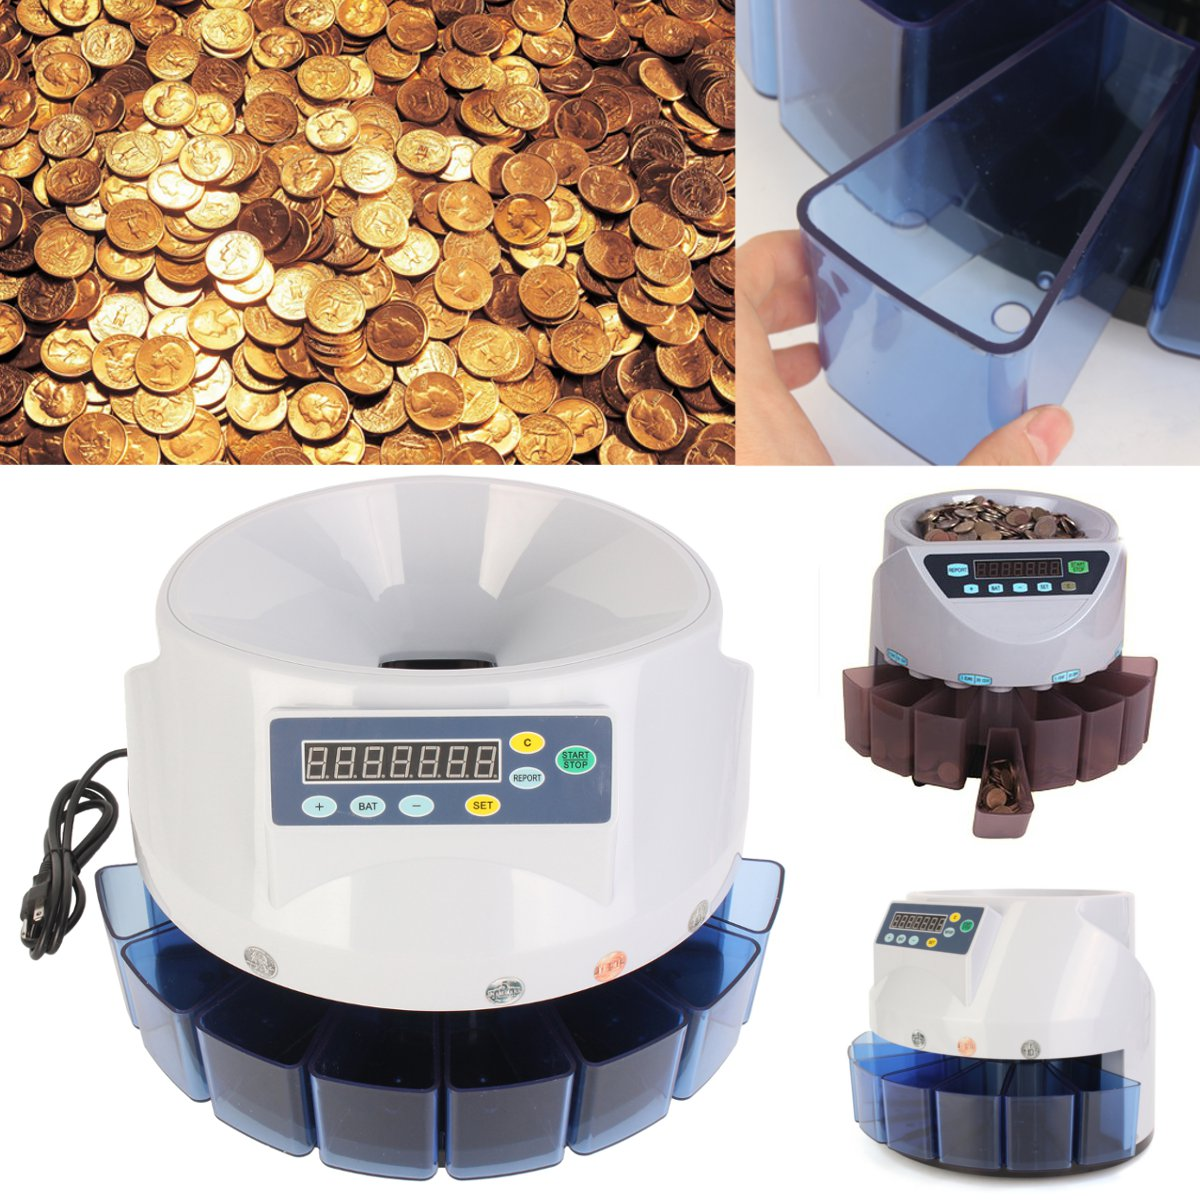 Meigar Commercial Automatic Electronic Digital US Coin So...